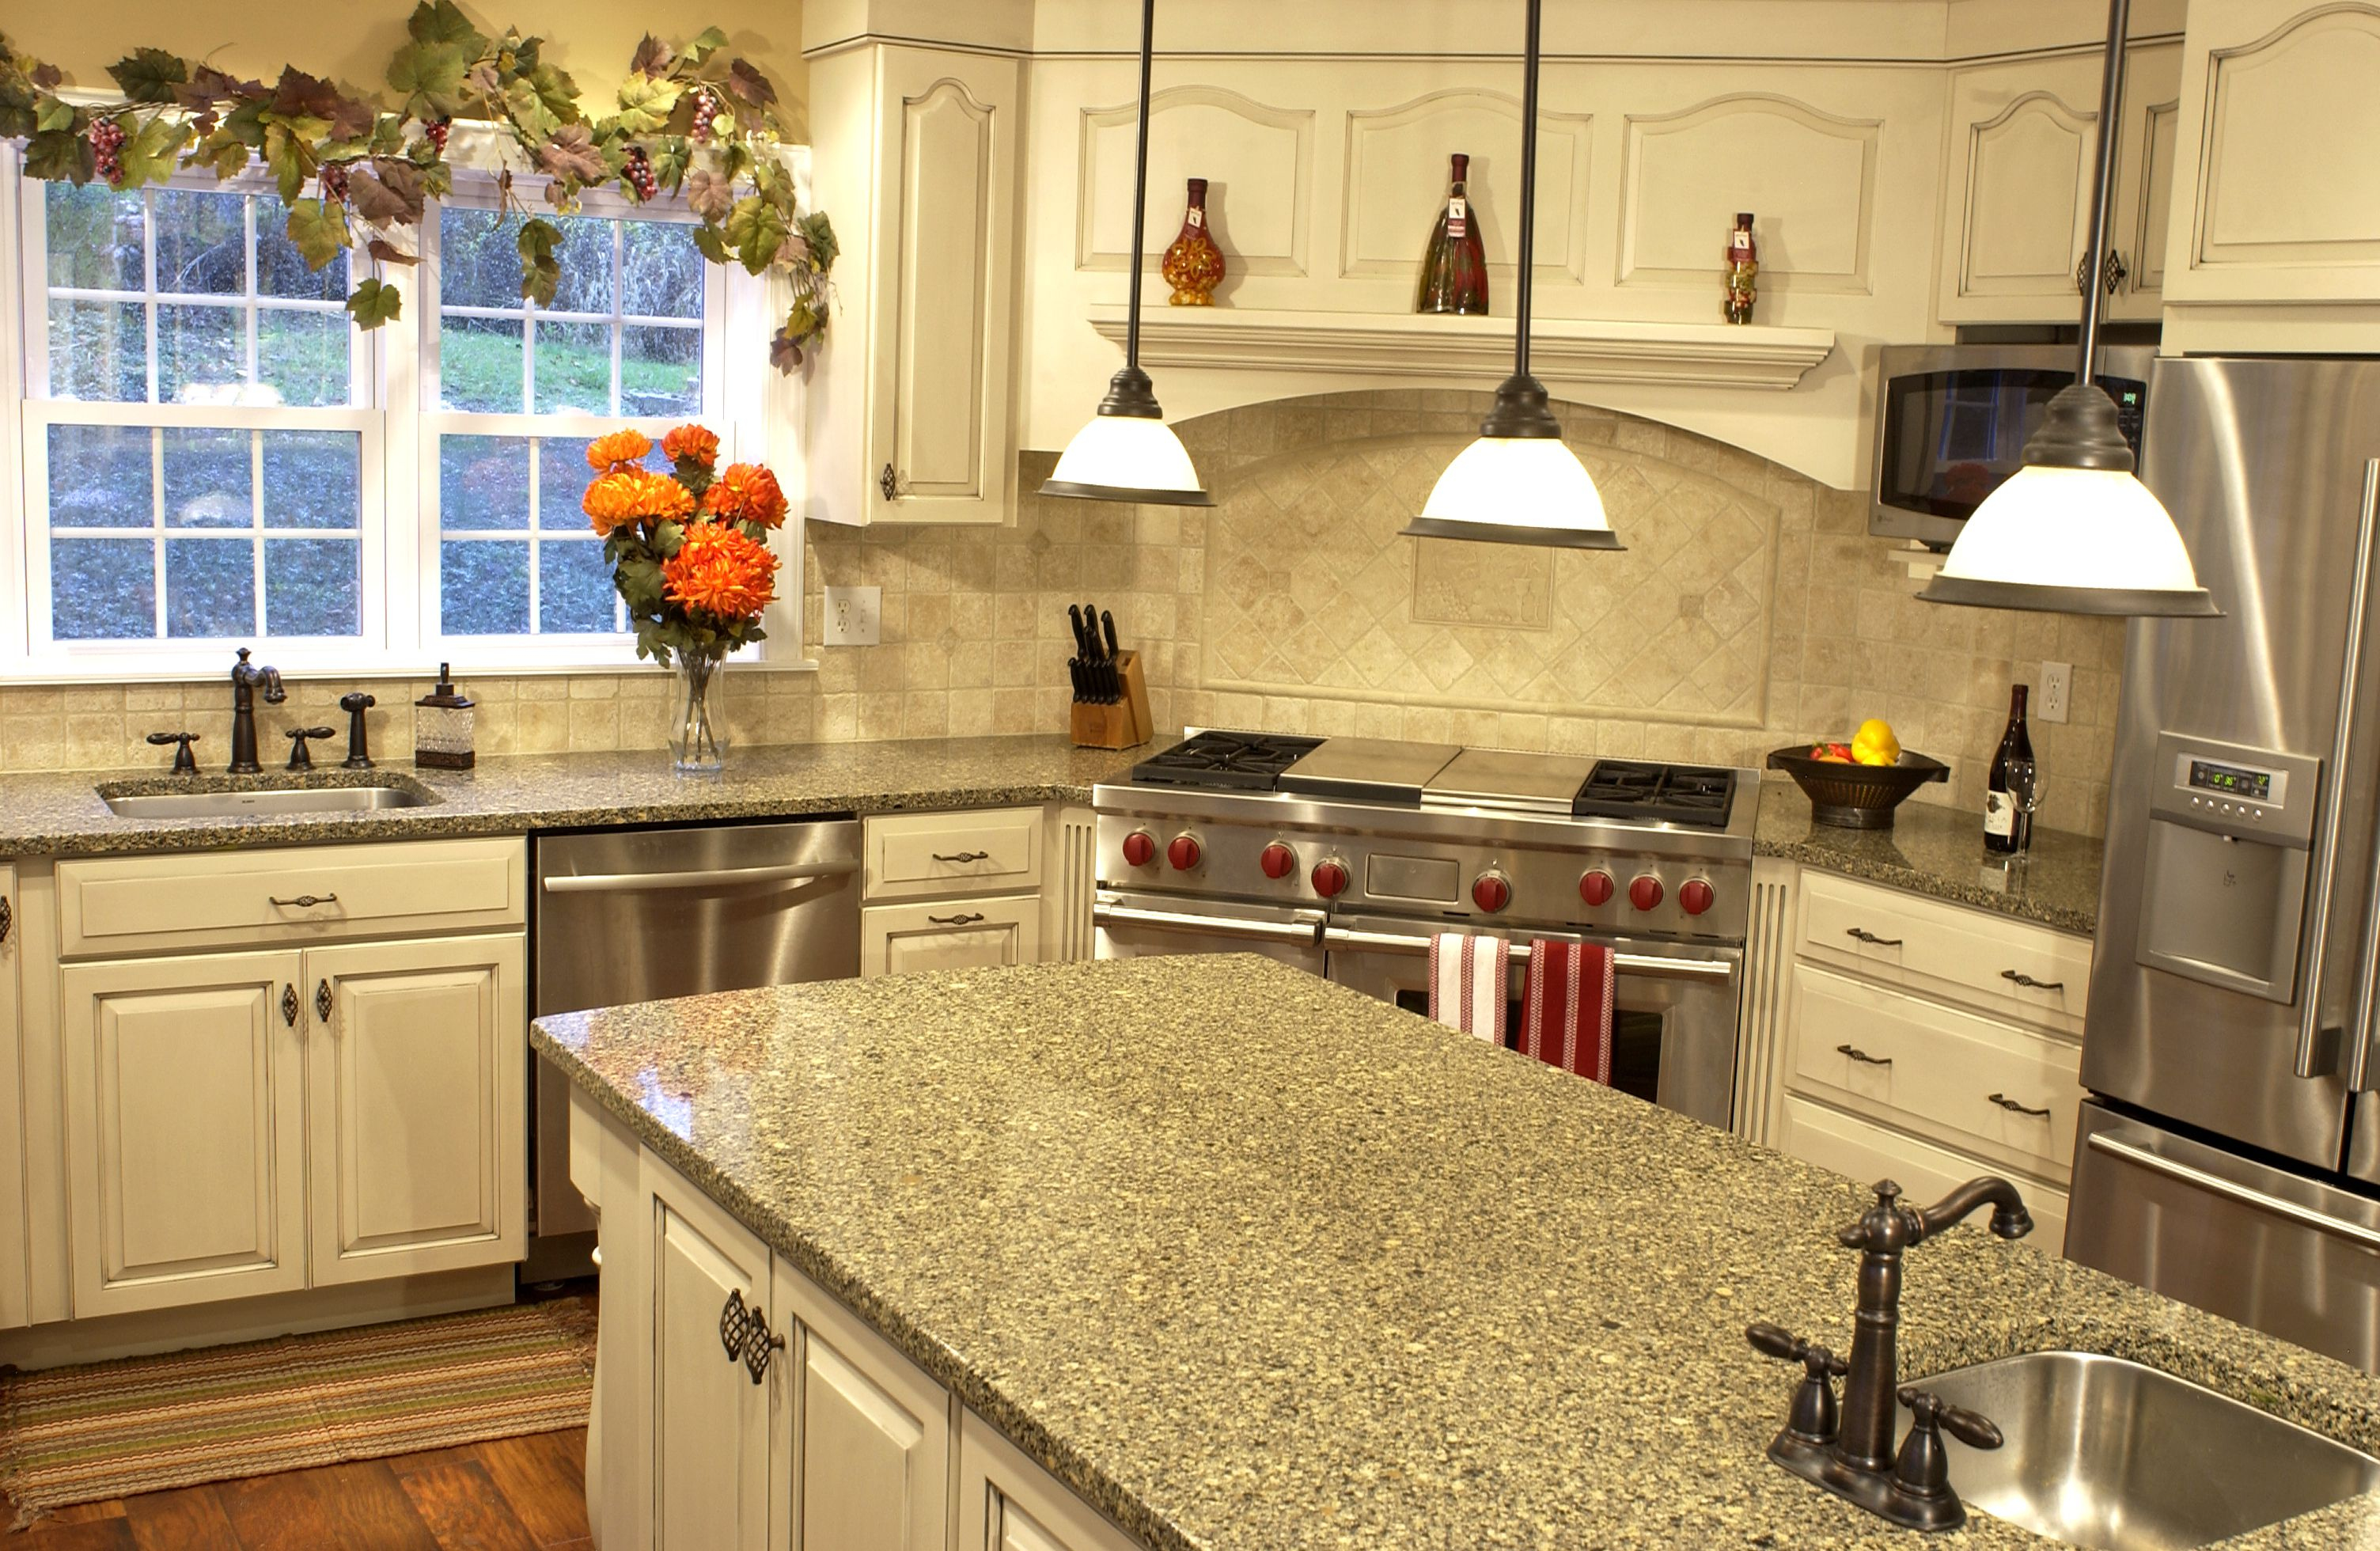 Kitchen Counter Decor Ideas To Make Your Cooking Space